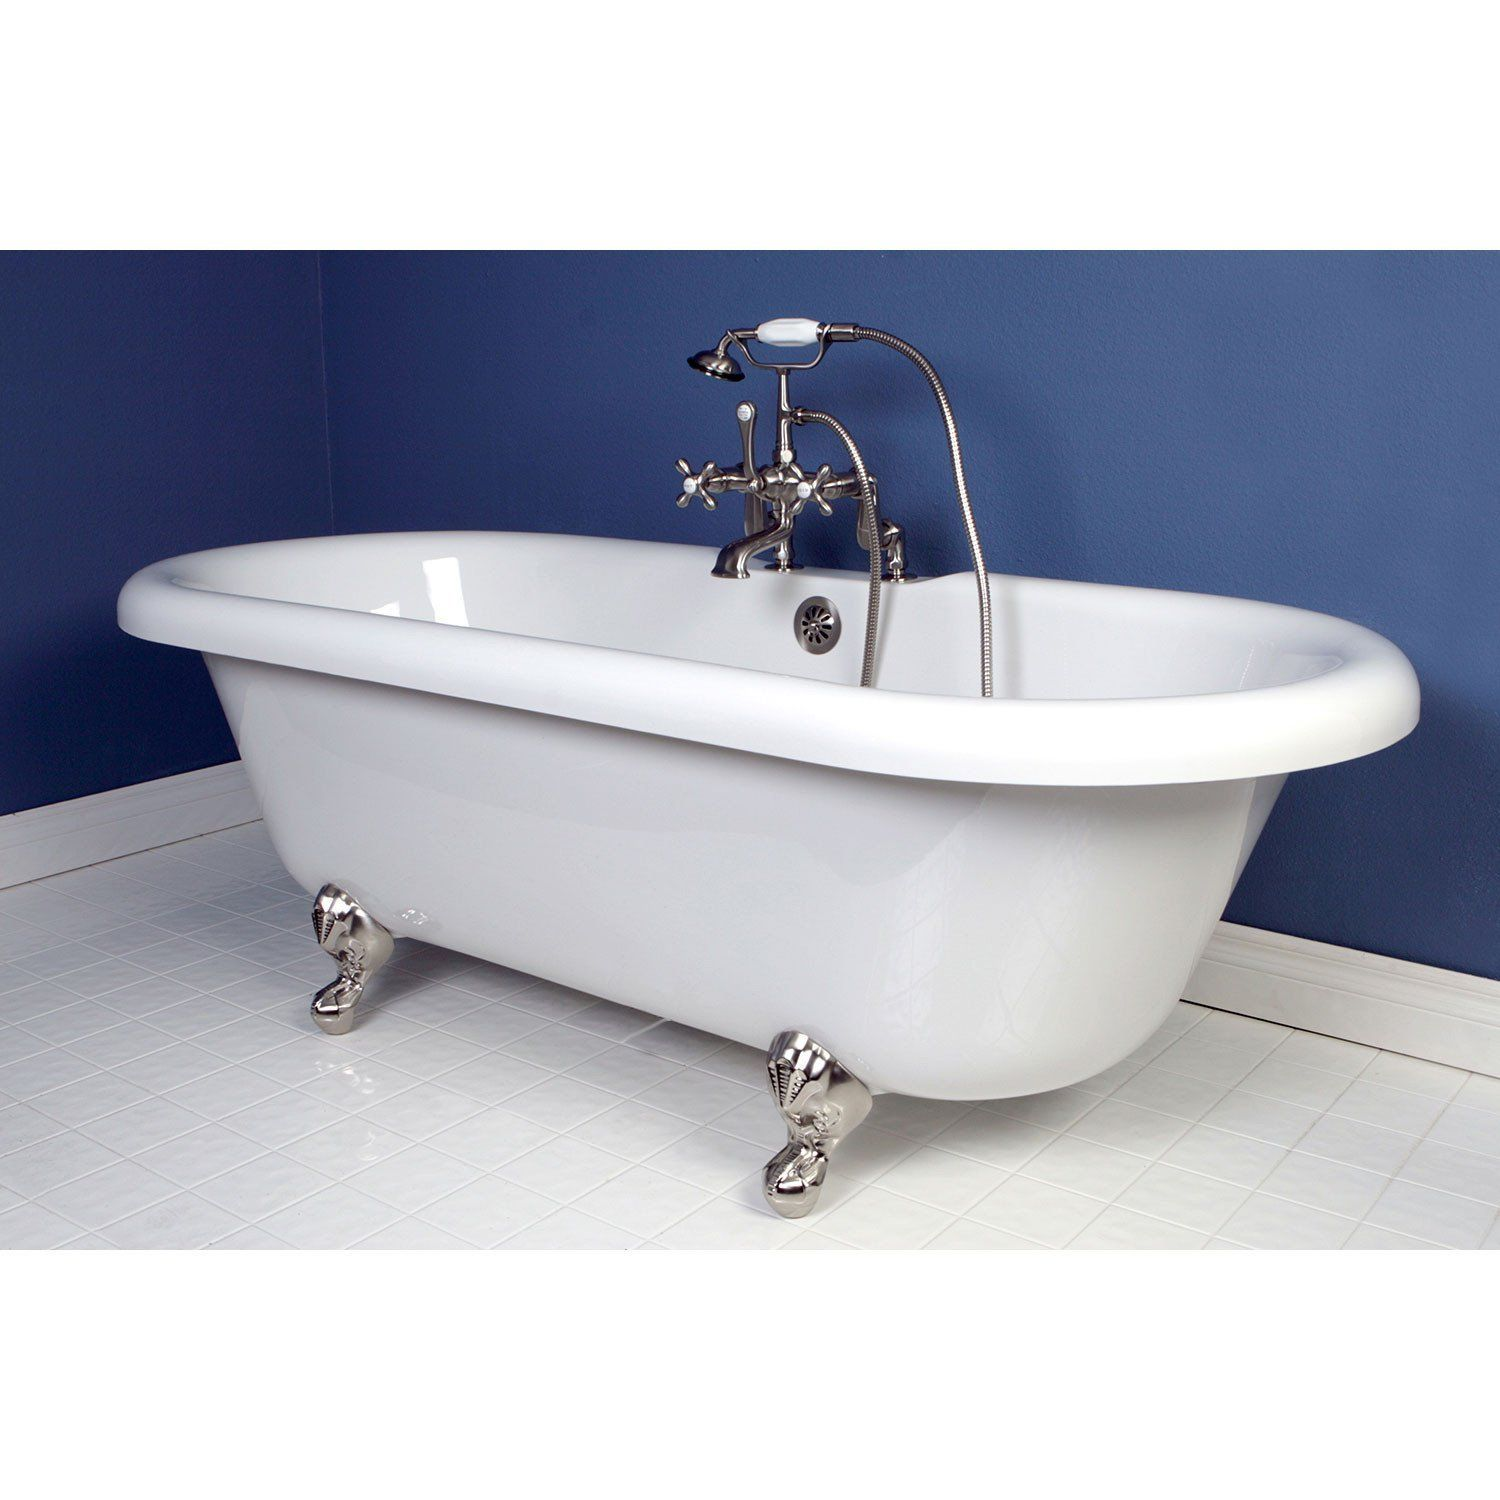 "67"" acrylic clawfoot tub with satin nickel tub faucet & hardware"